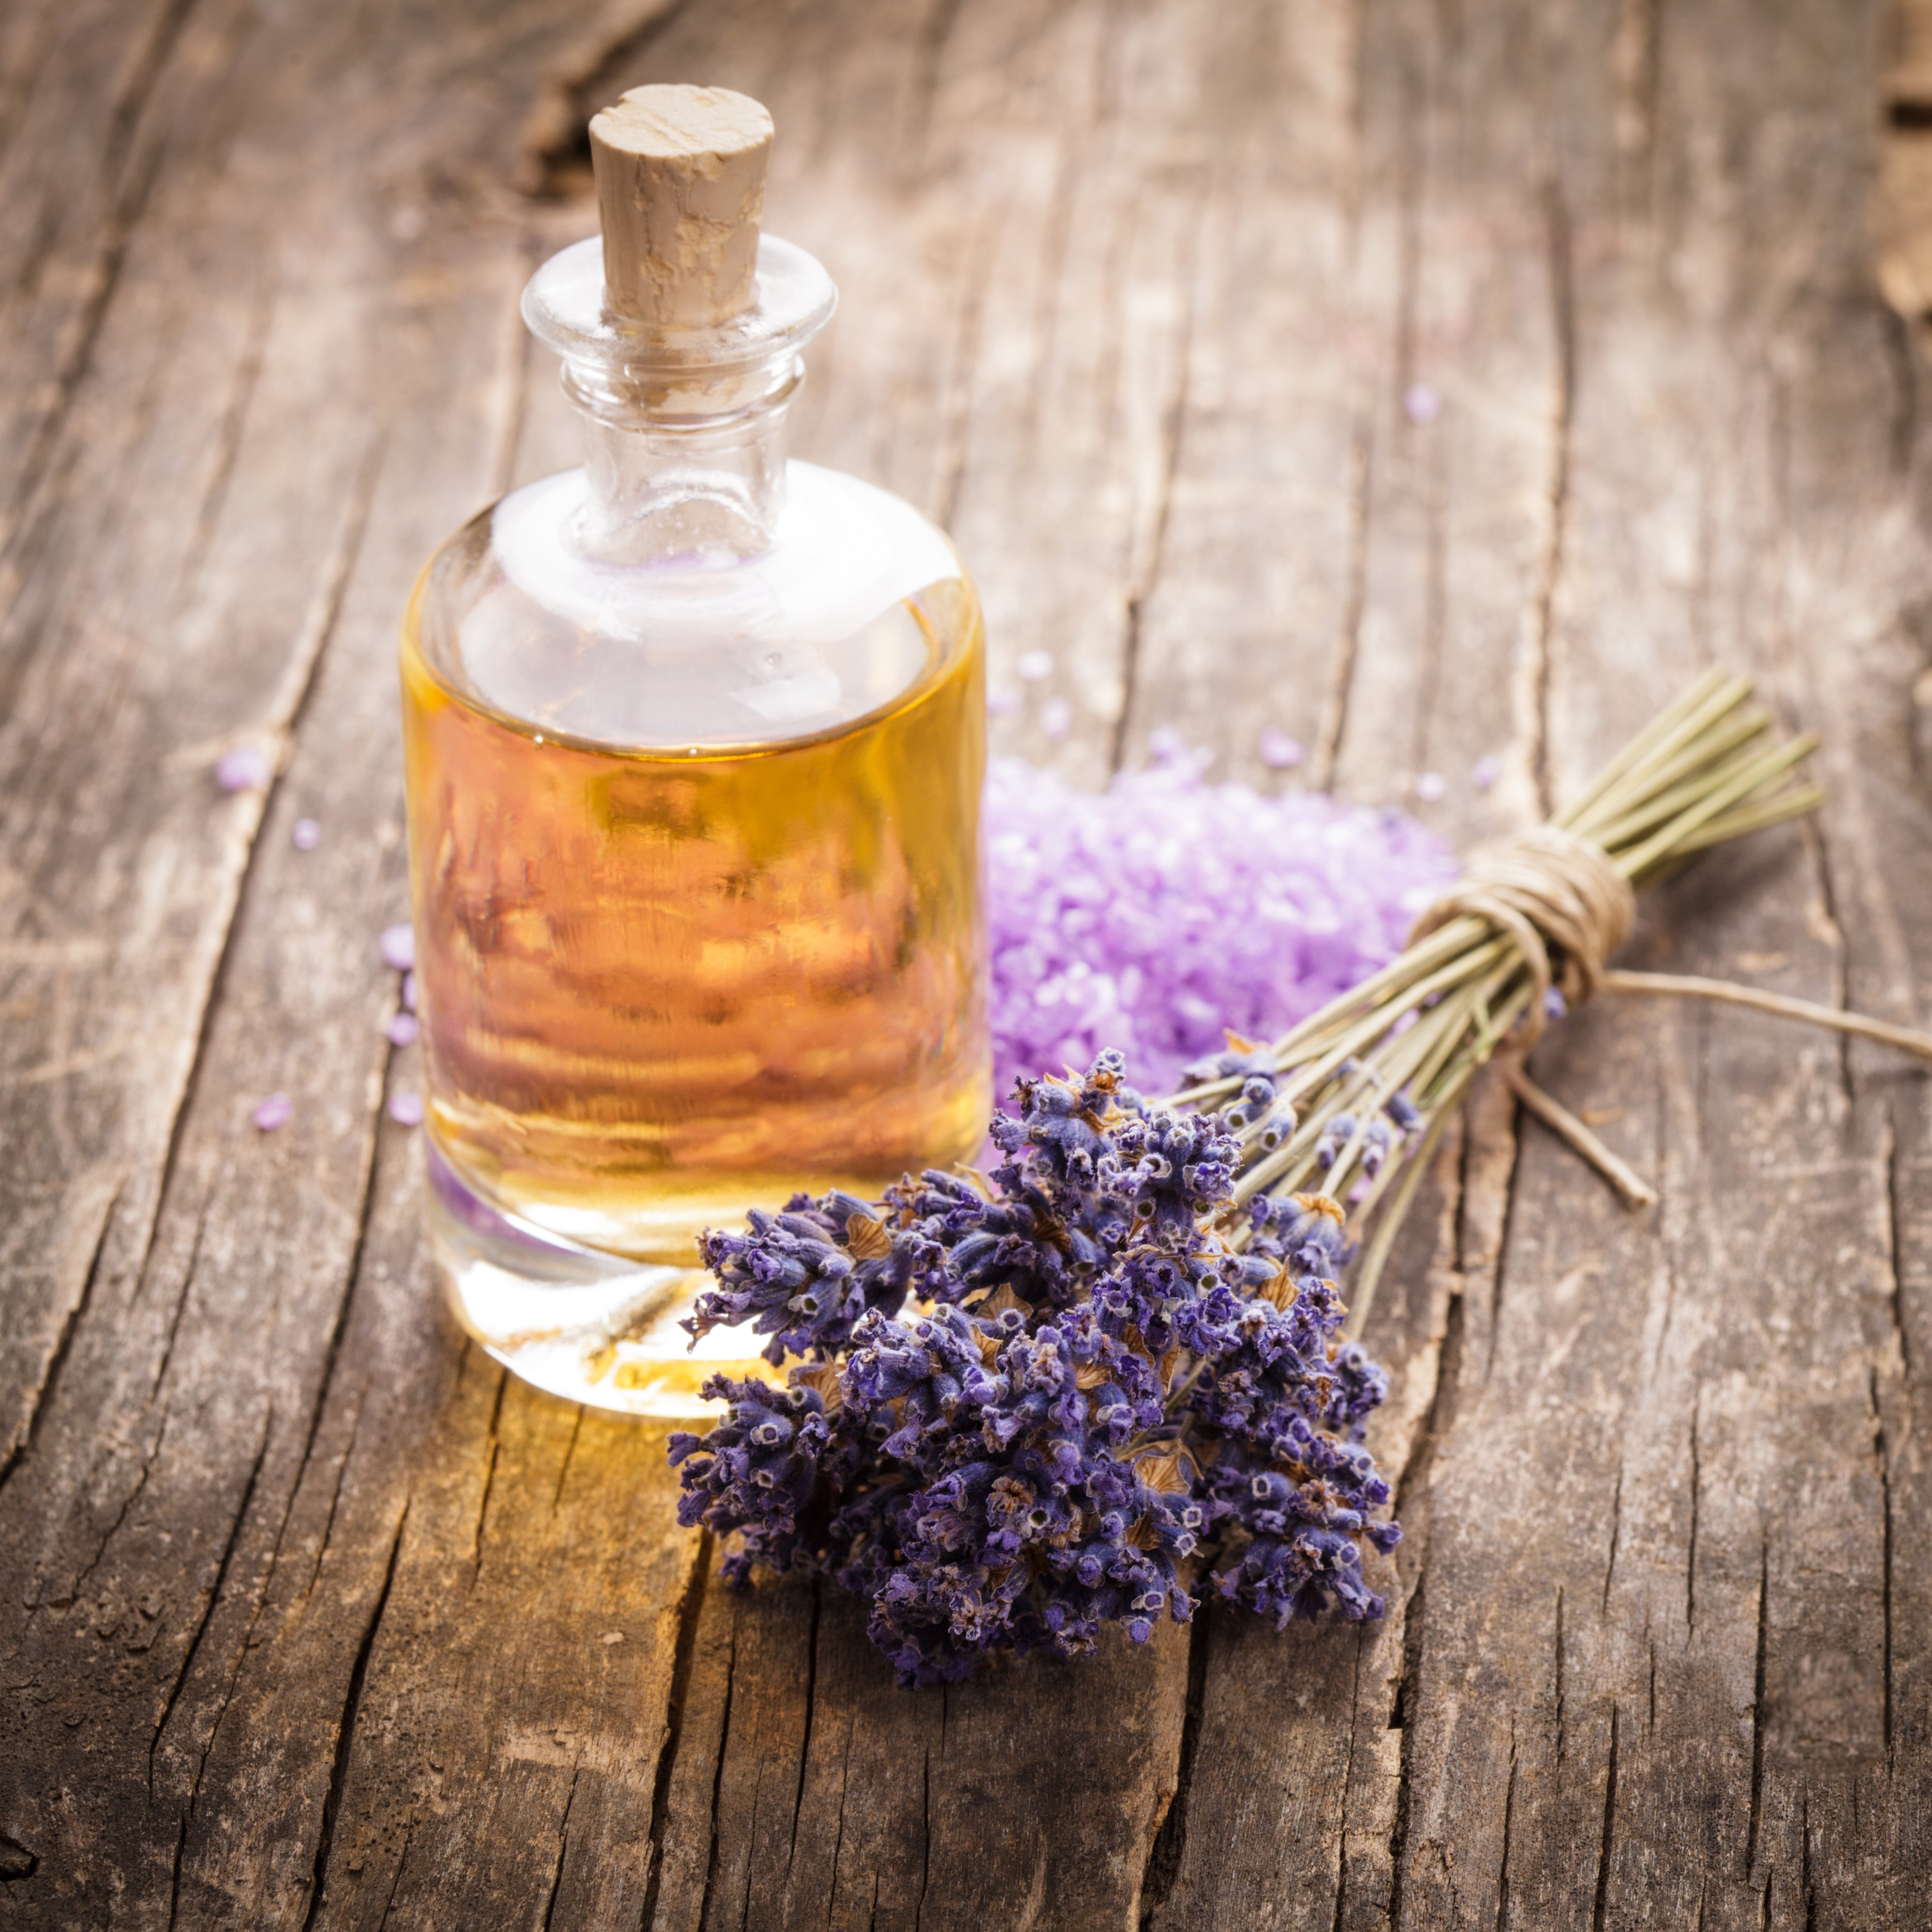 6 Tips For Choosing High Quality Essential Oils